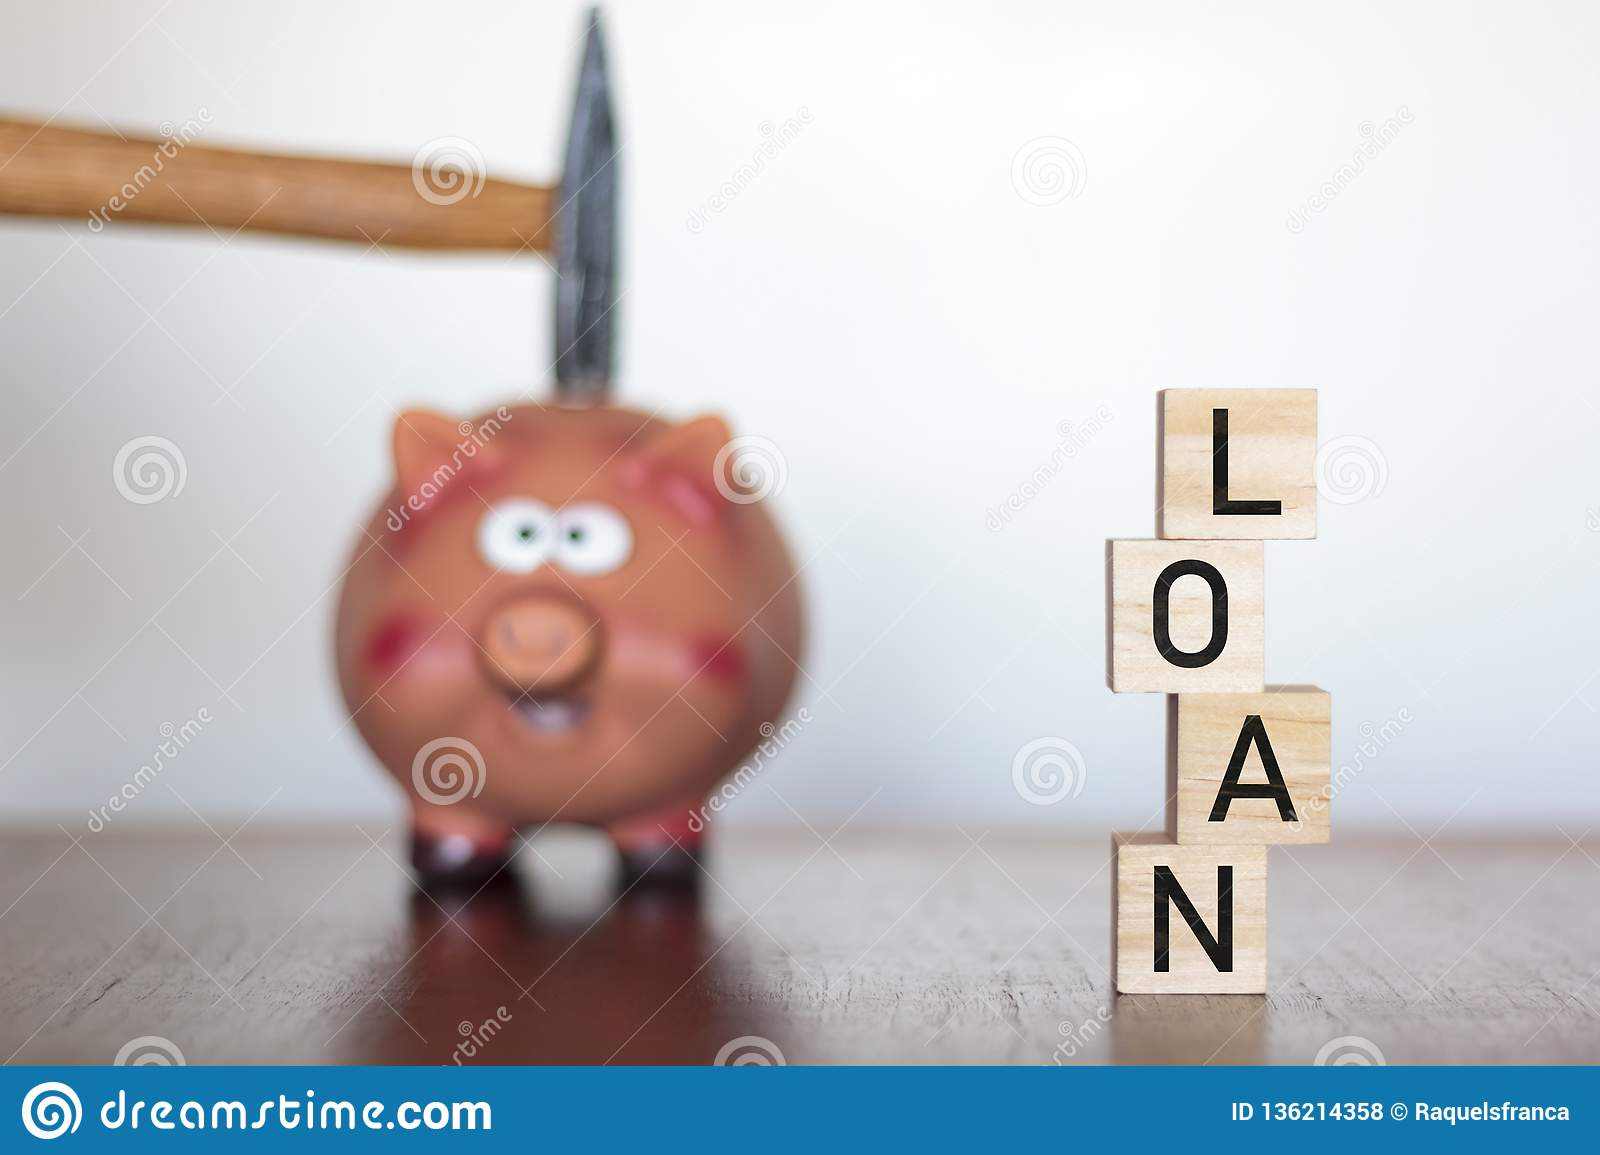 Hand holding a hammer above a Piggy bank and the word LOAN written on wooden cubes